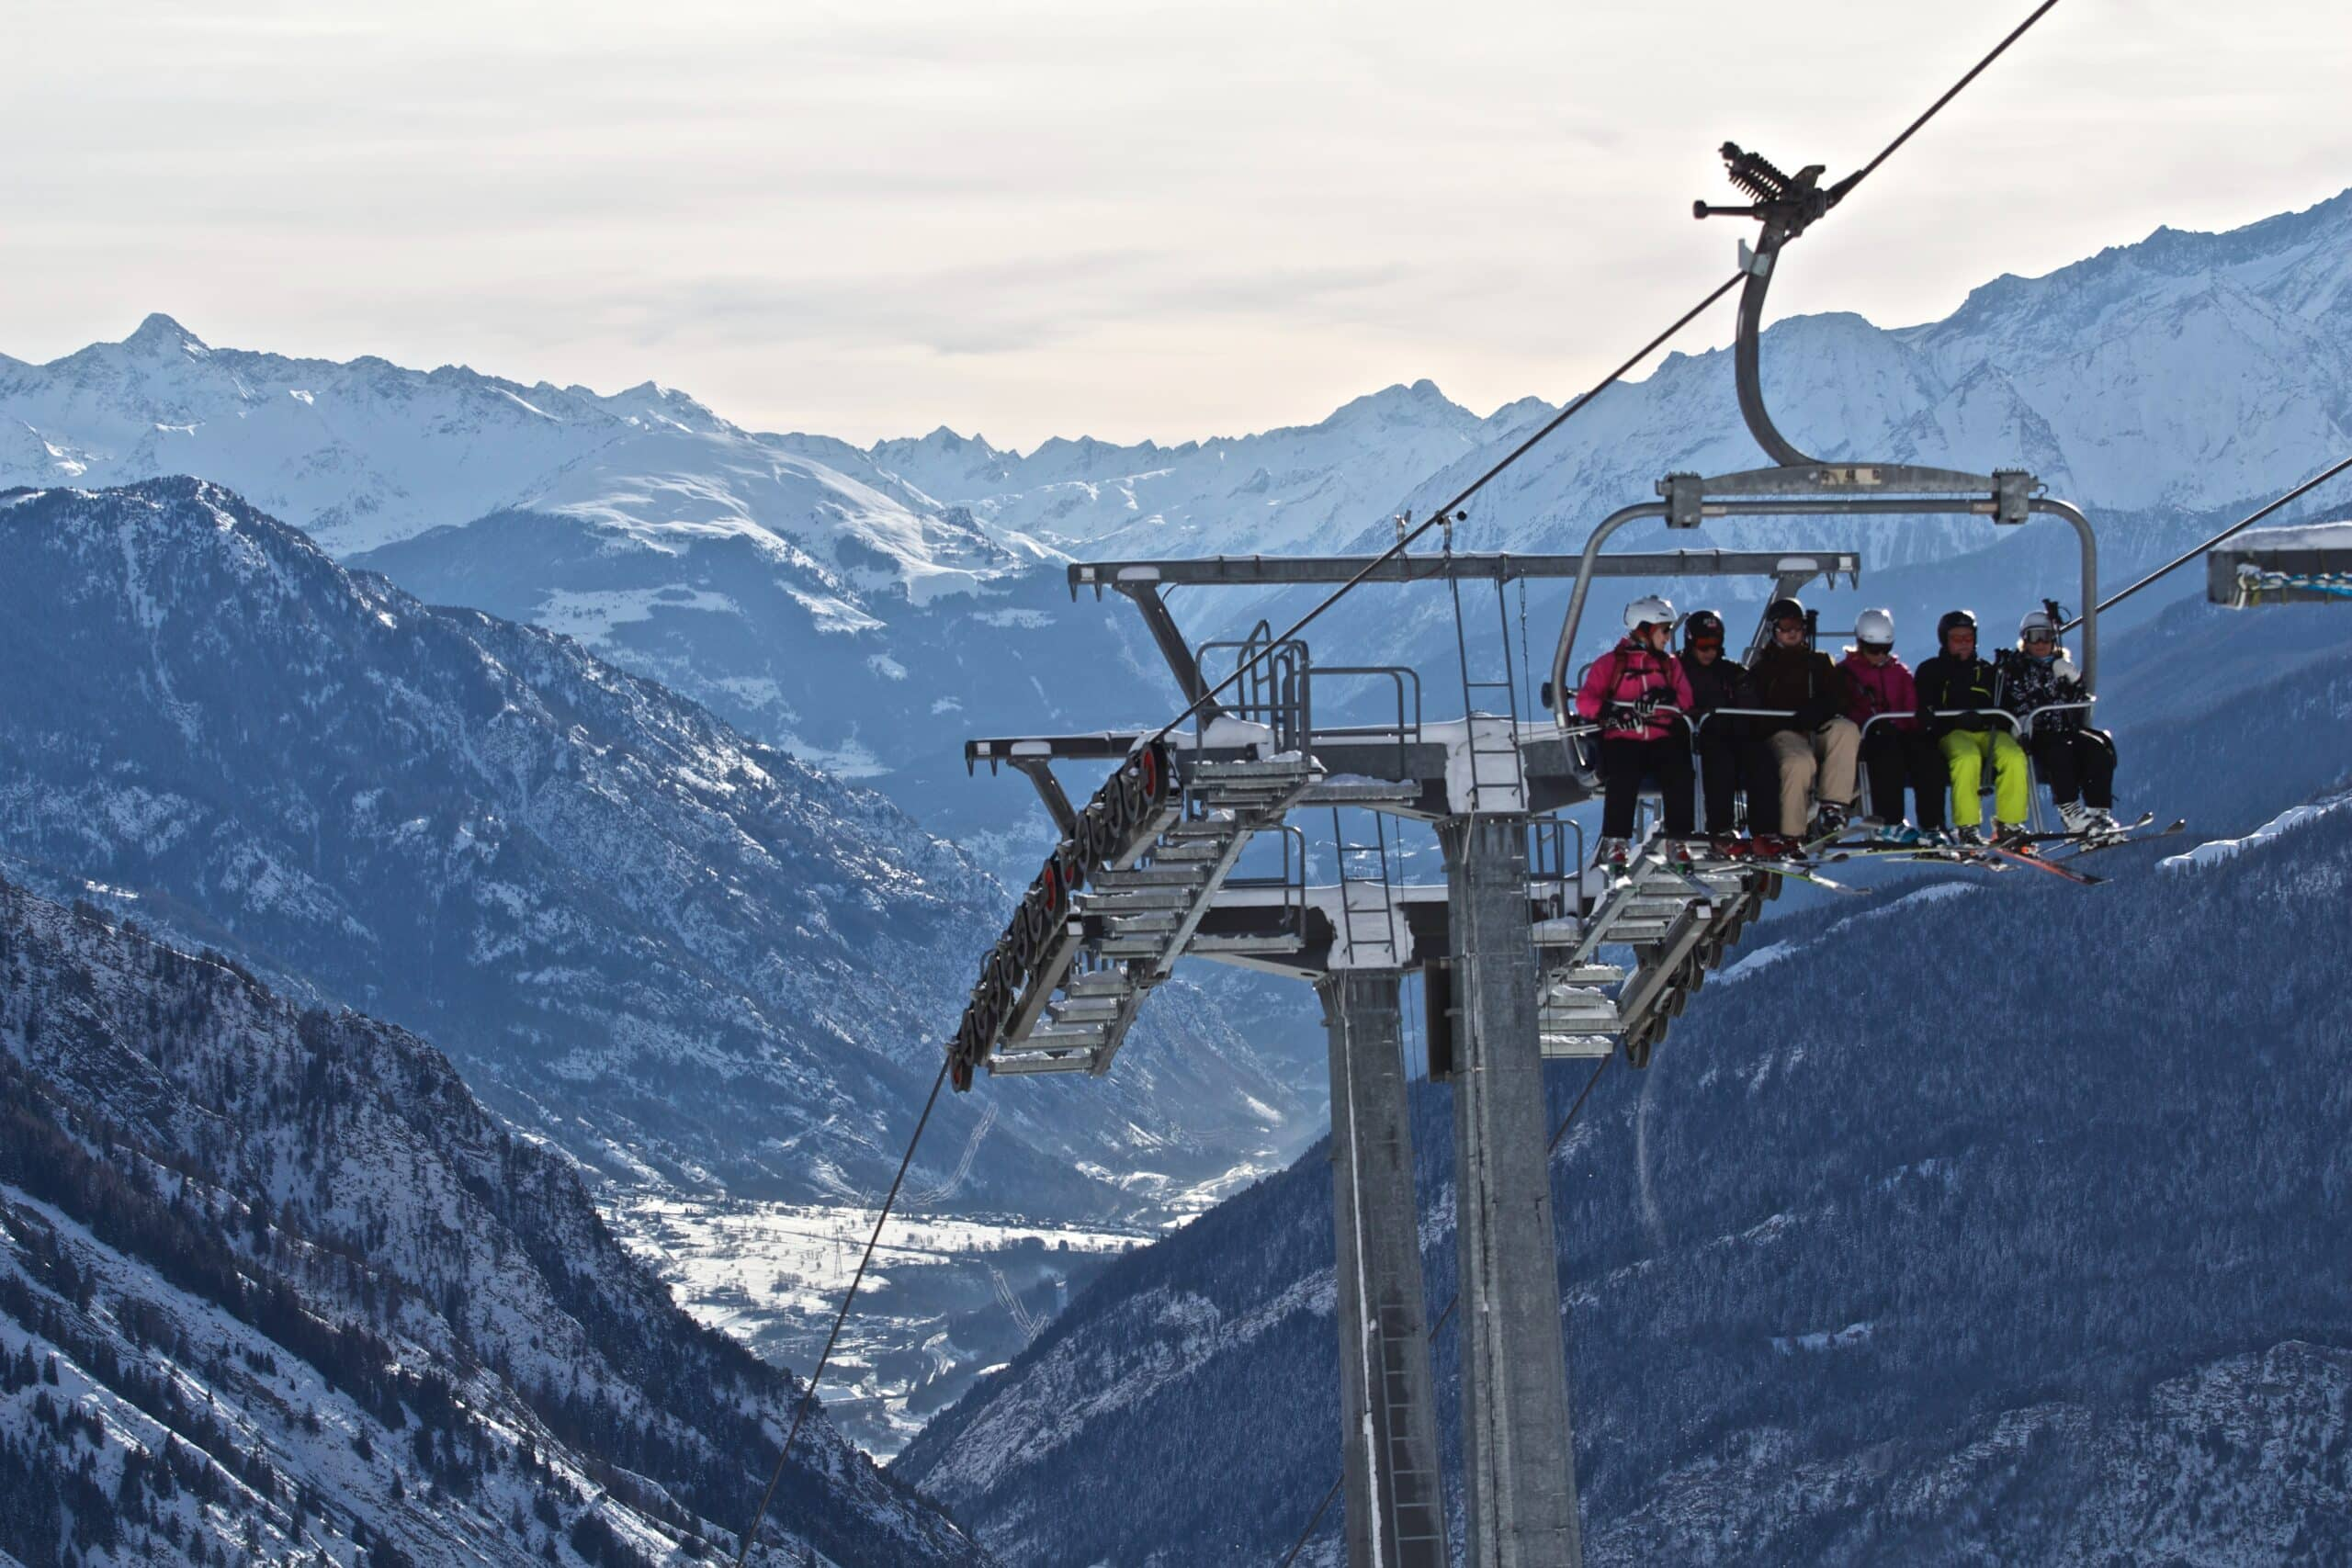 skiiers and snowboarders on a lift